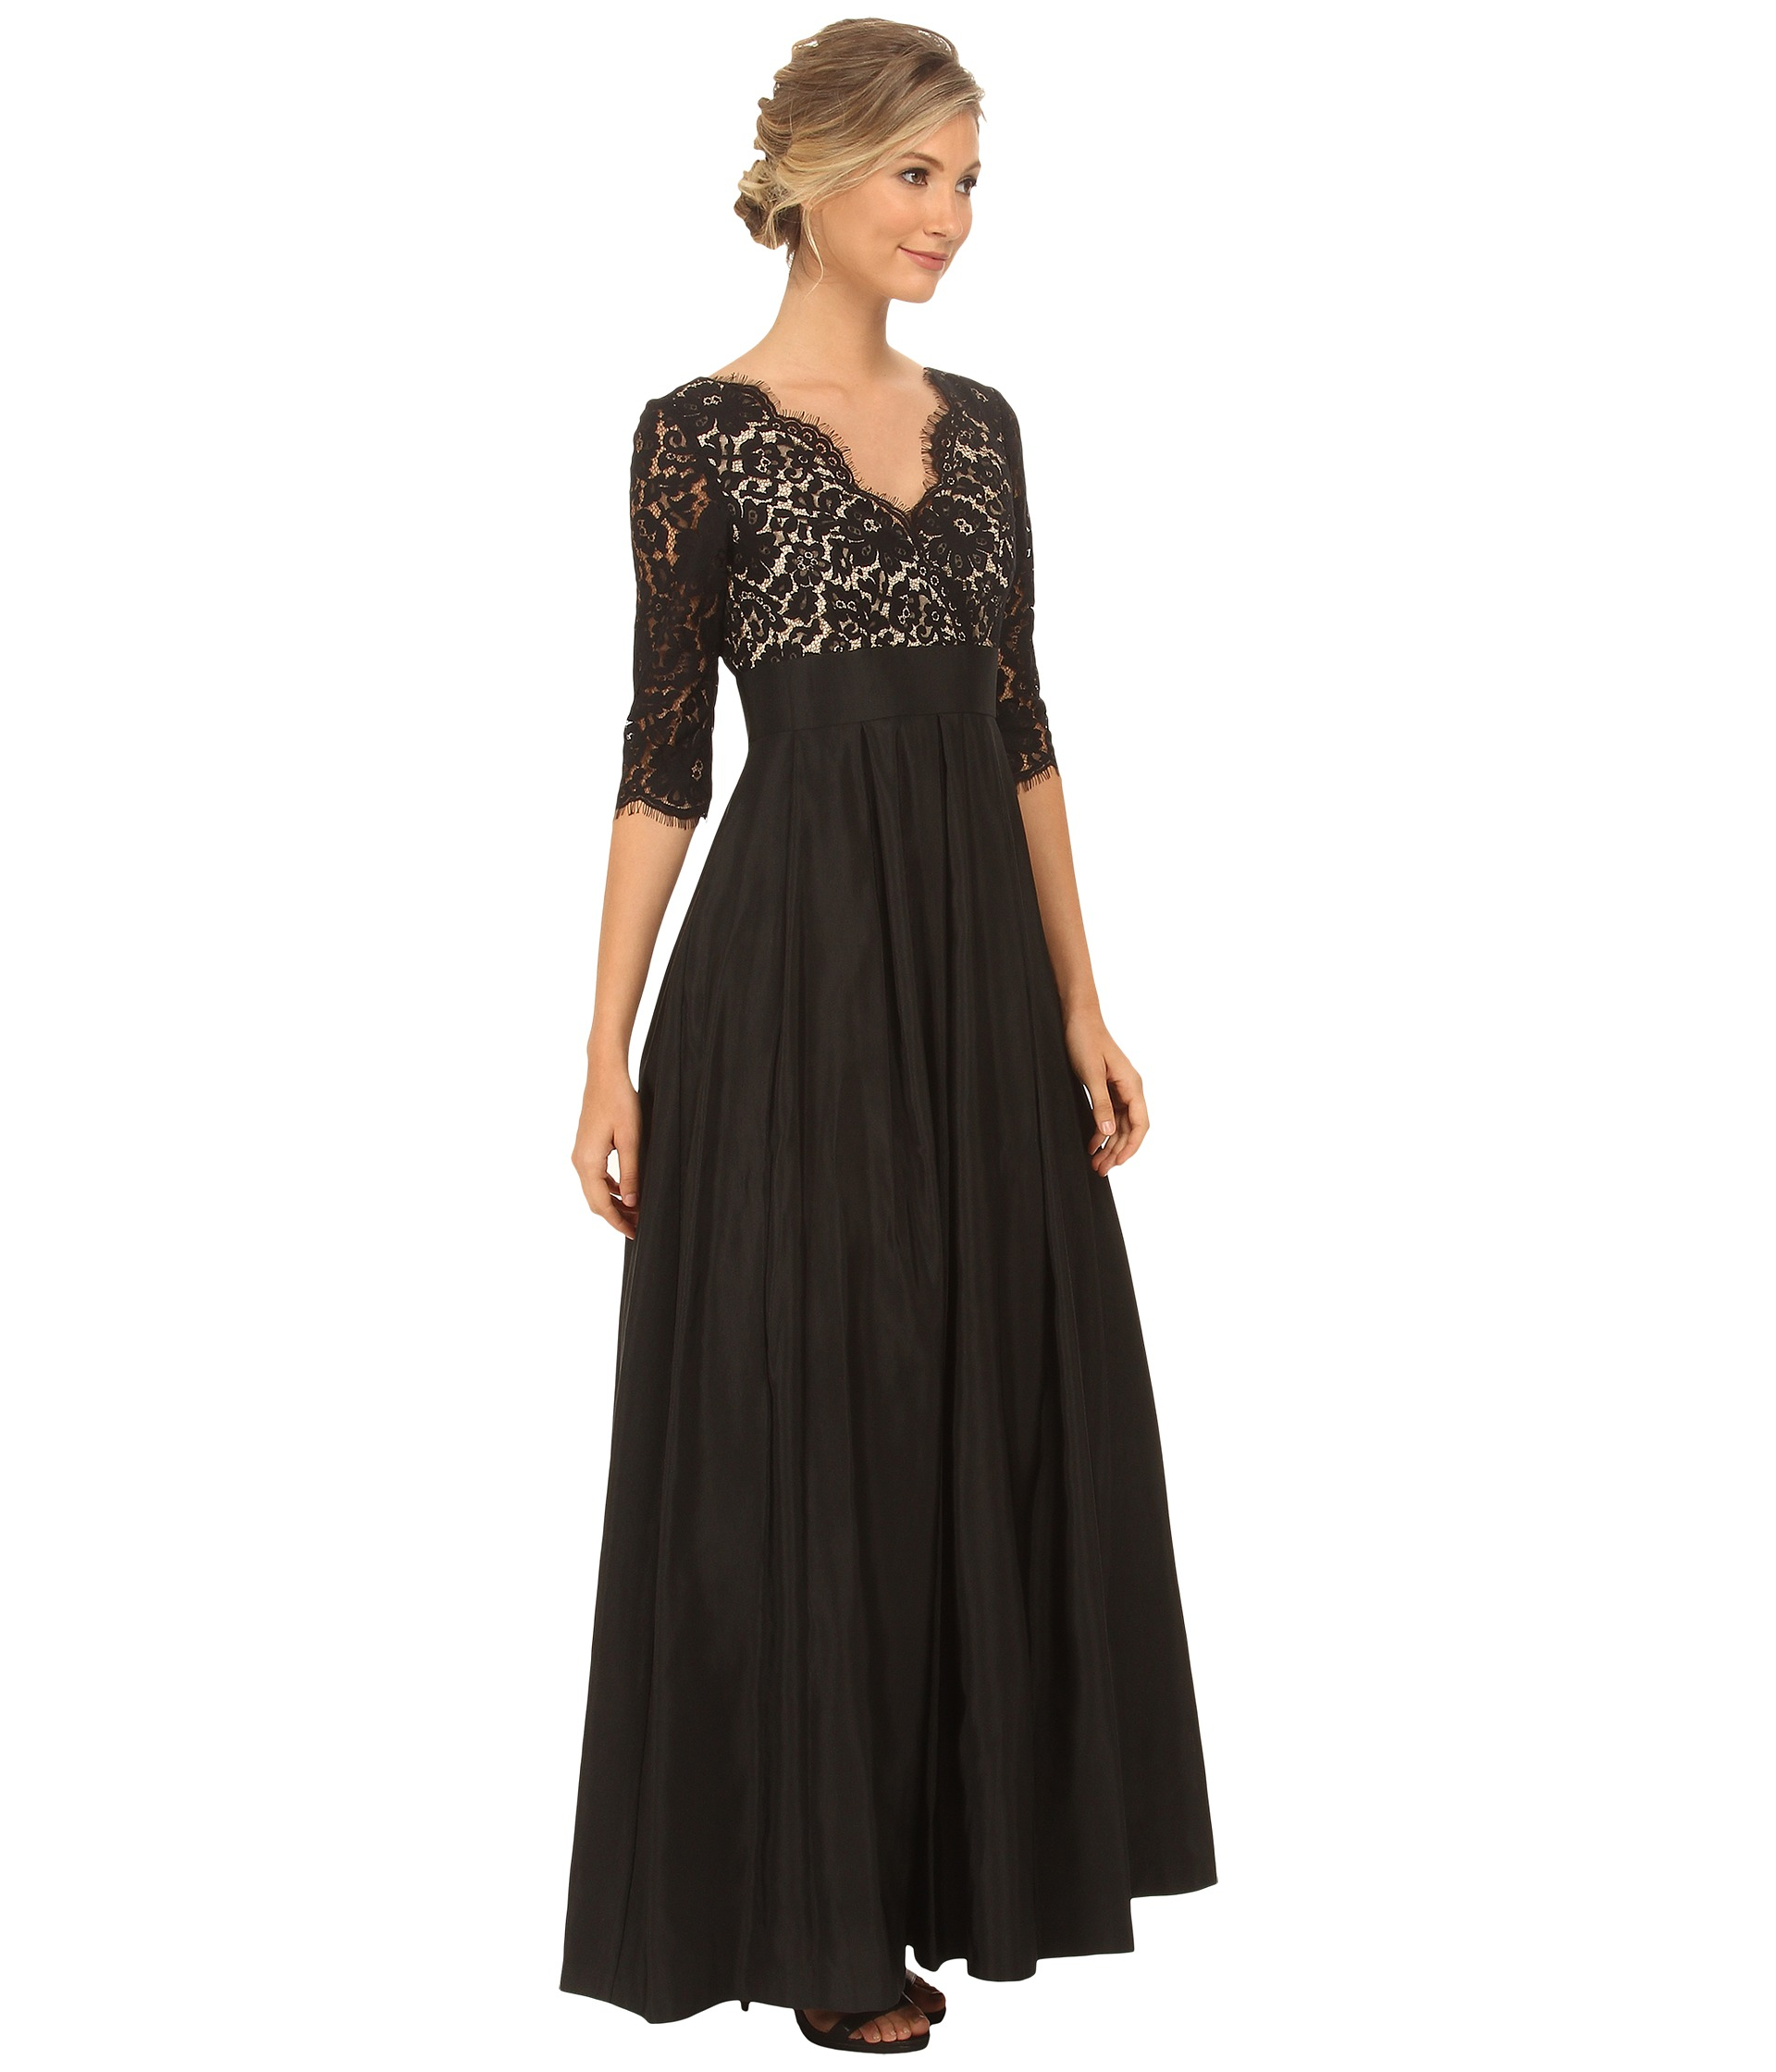 Lyst - Eliza J 3/4 Sleeve Surplice Lace Gown With Faile Skirt in Black